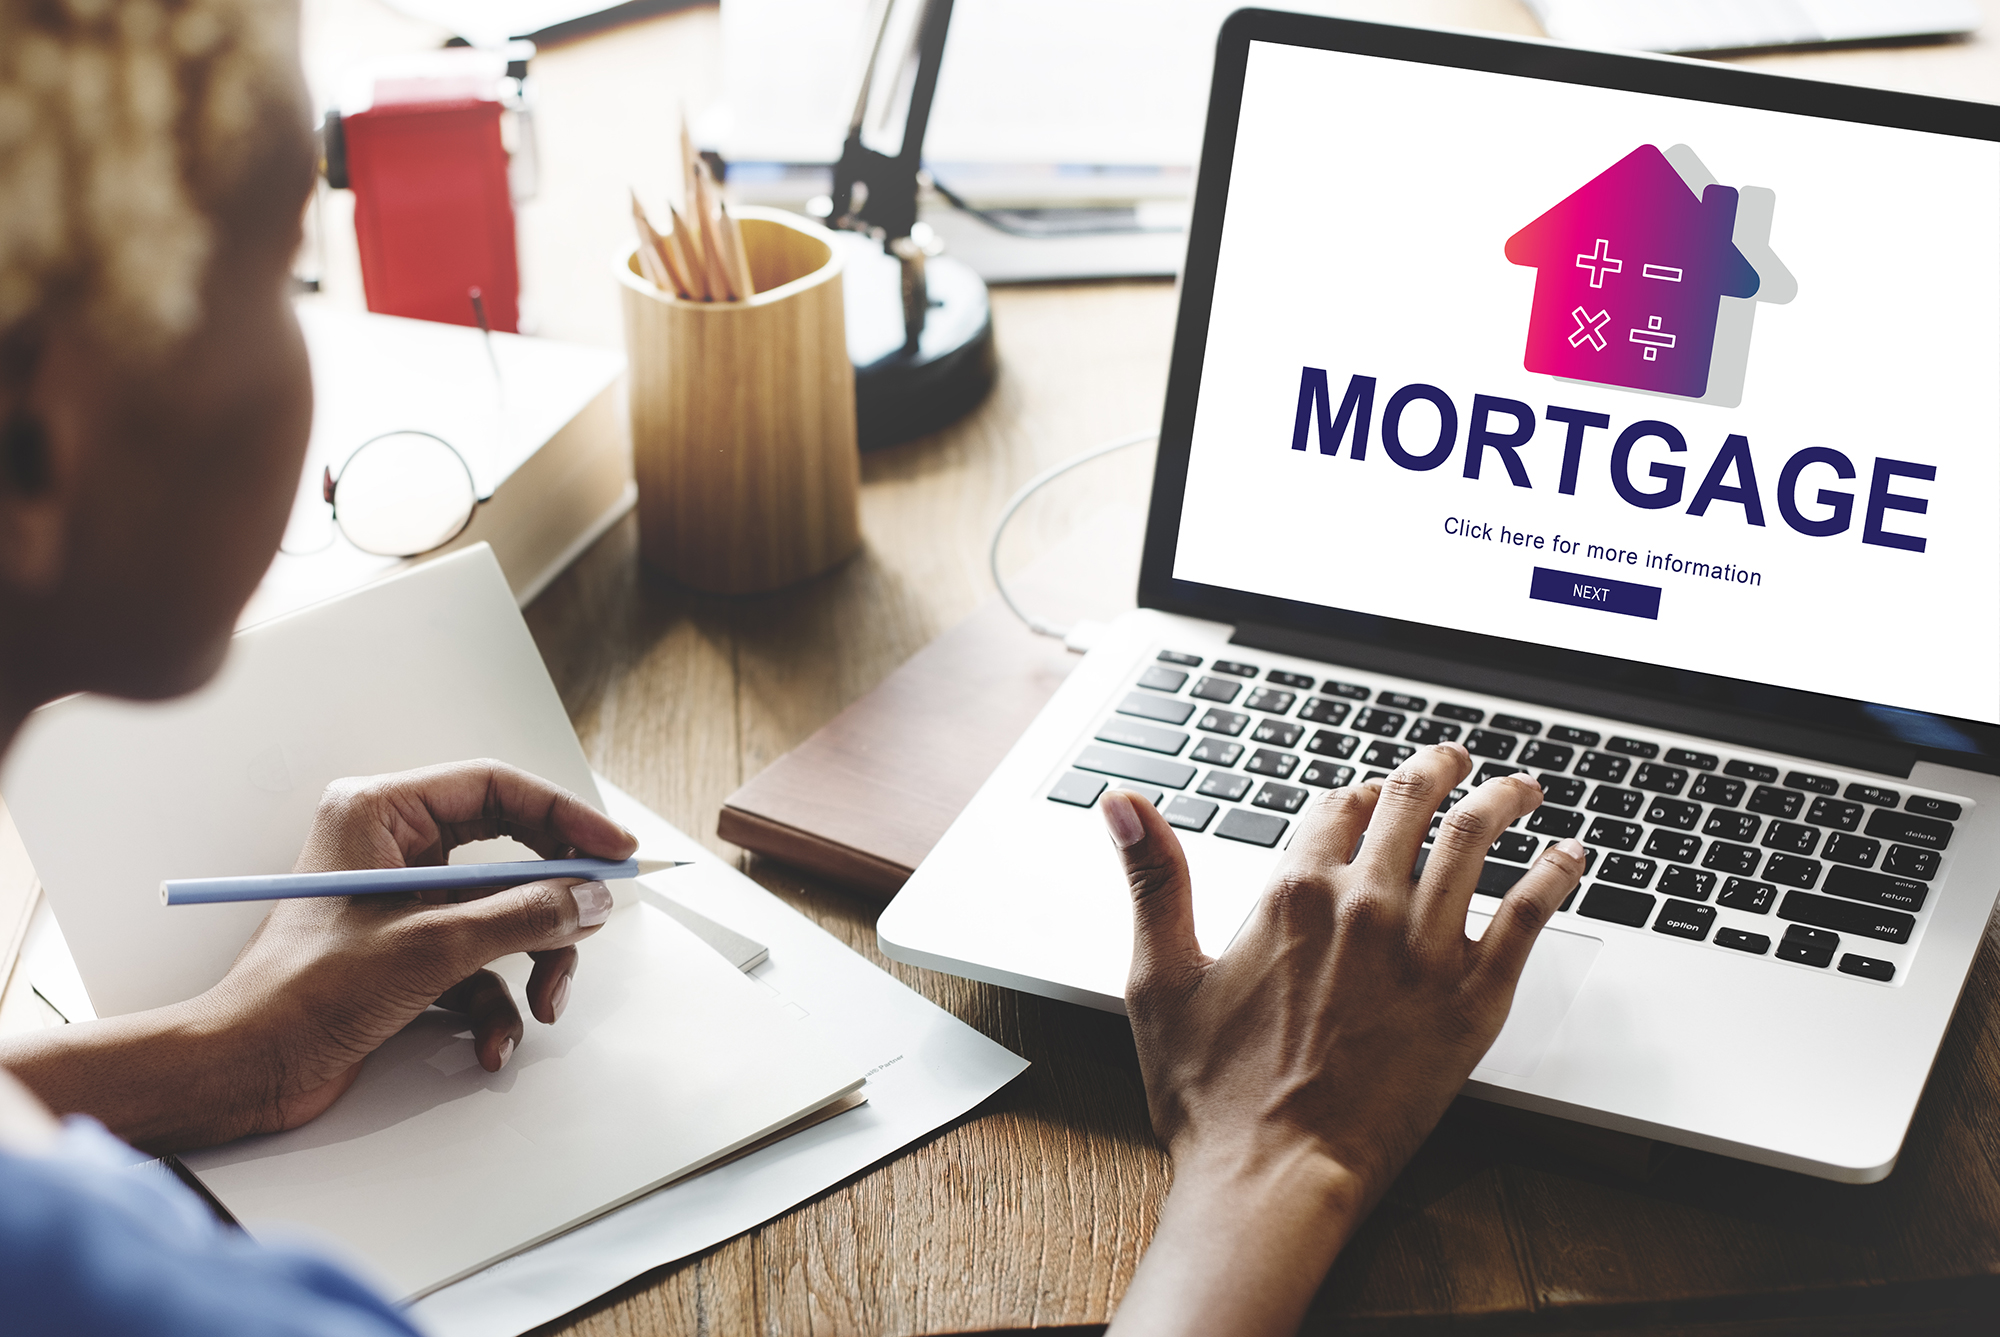 Woman looking up mortgage information online. (Image: Shutterstock)